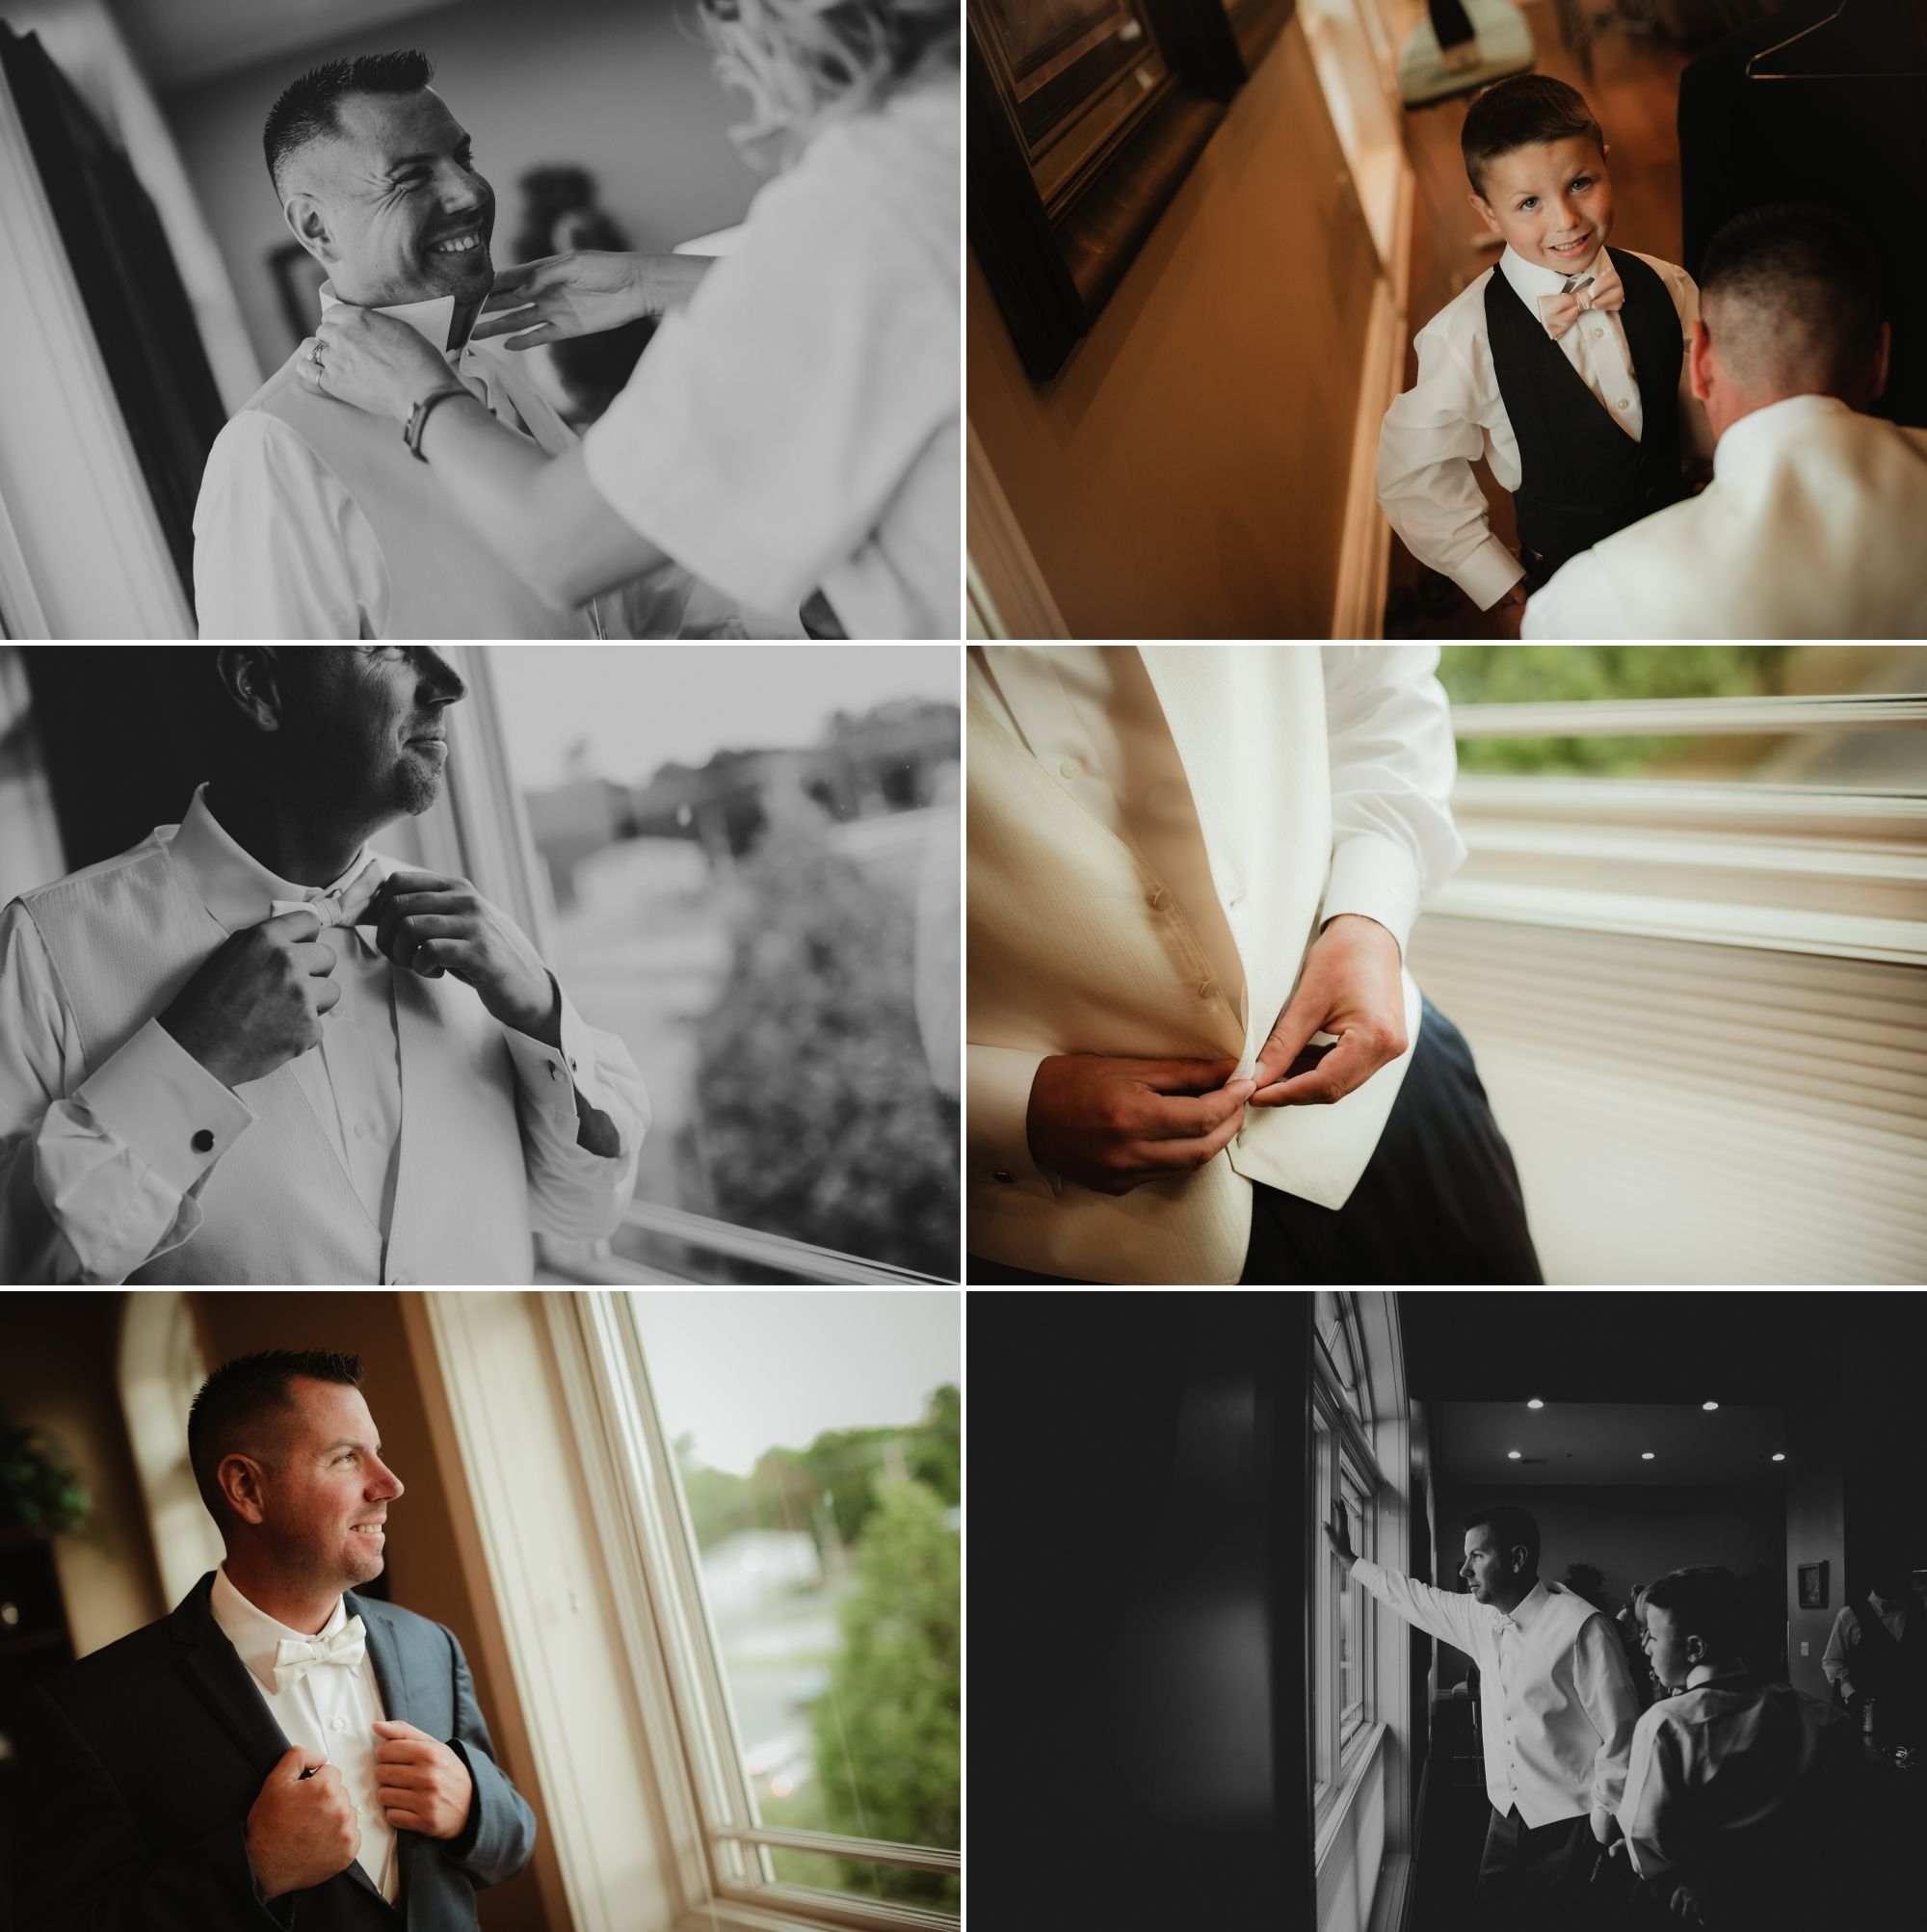 Photos of the groom and ring bearer getting ready.